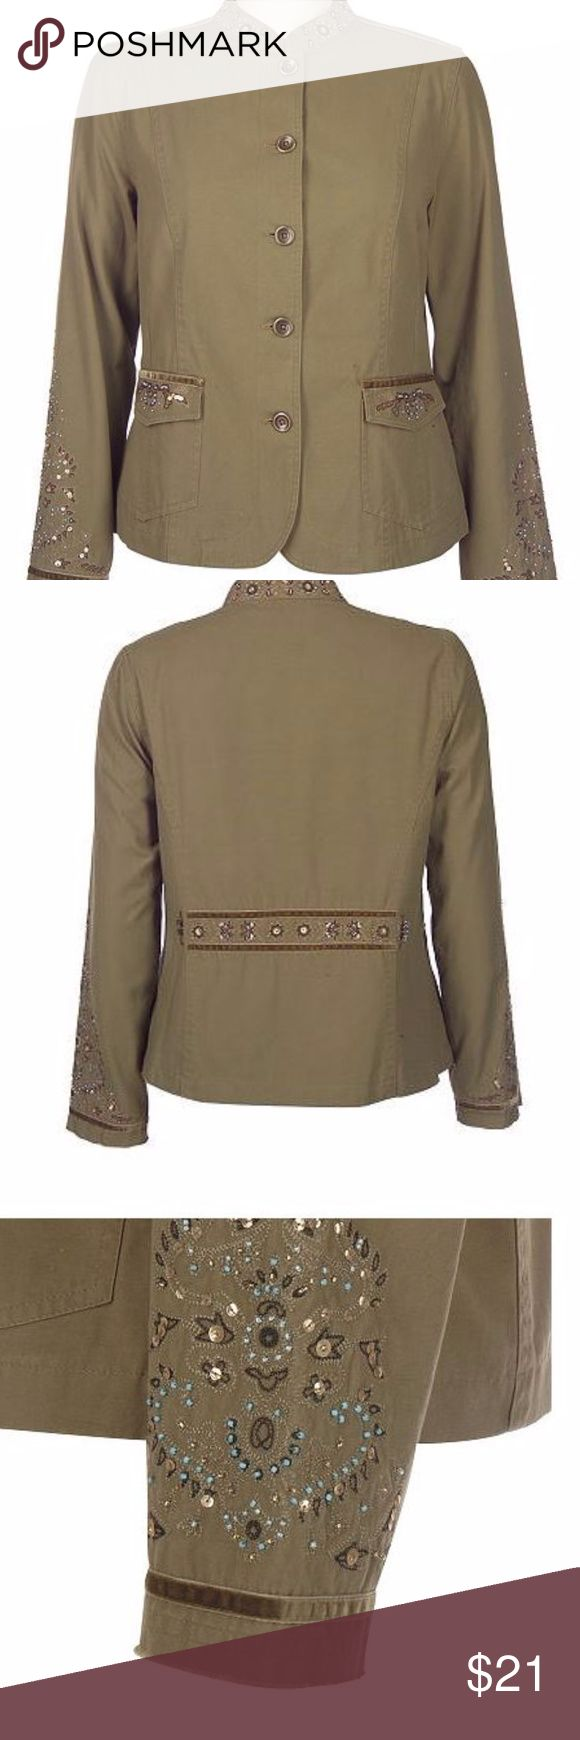 Motto - Olive Green Jacket - Large (14-16) Motto - Olive Green Jacket - Large (14-16) Velvet and bead embellishments boost the style of this canvas jacked.   Great piece to pair with jeans, dresses or skirts. Button down front.  Straight bottom hem. 100% cotton exclusive of decoration.  Machine wash, line dry. Motto Jackets & Coats